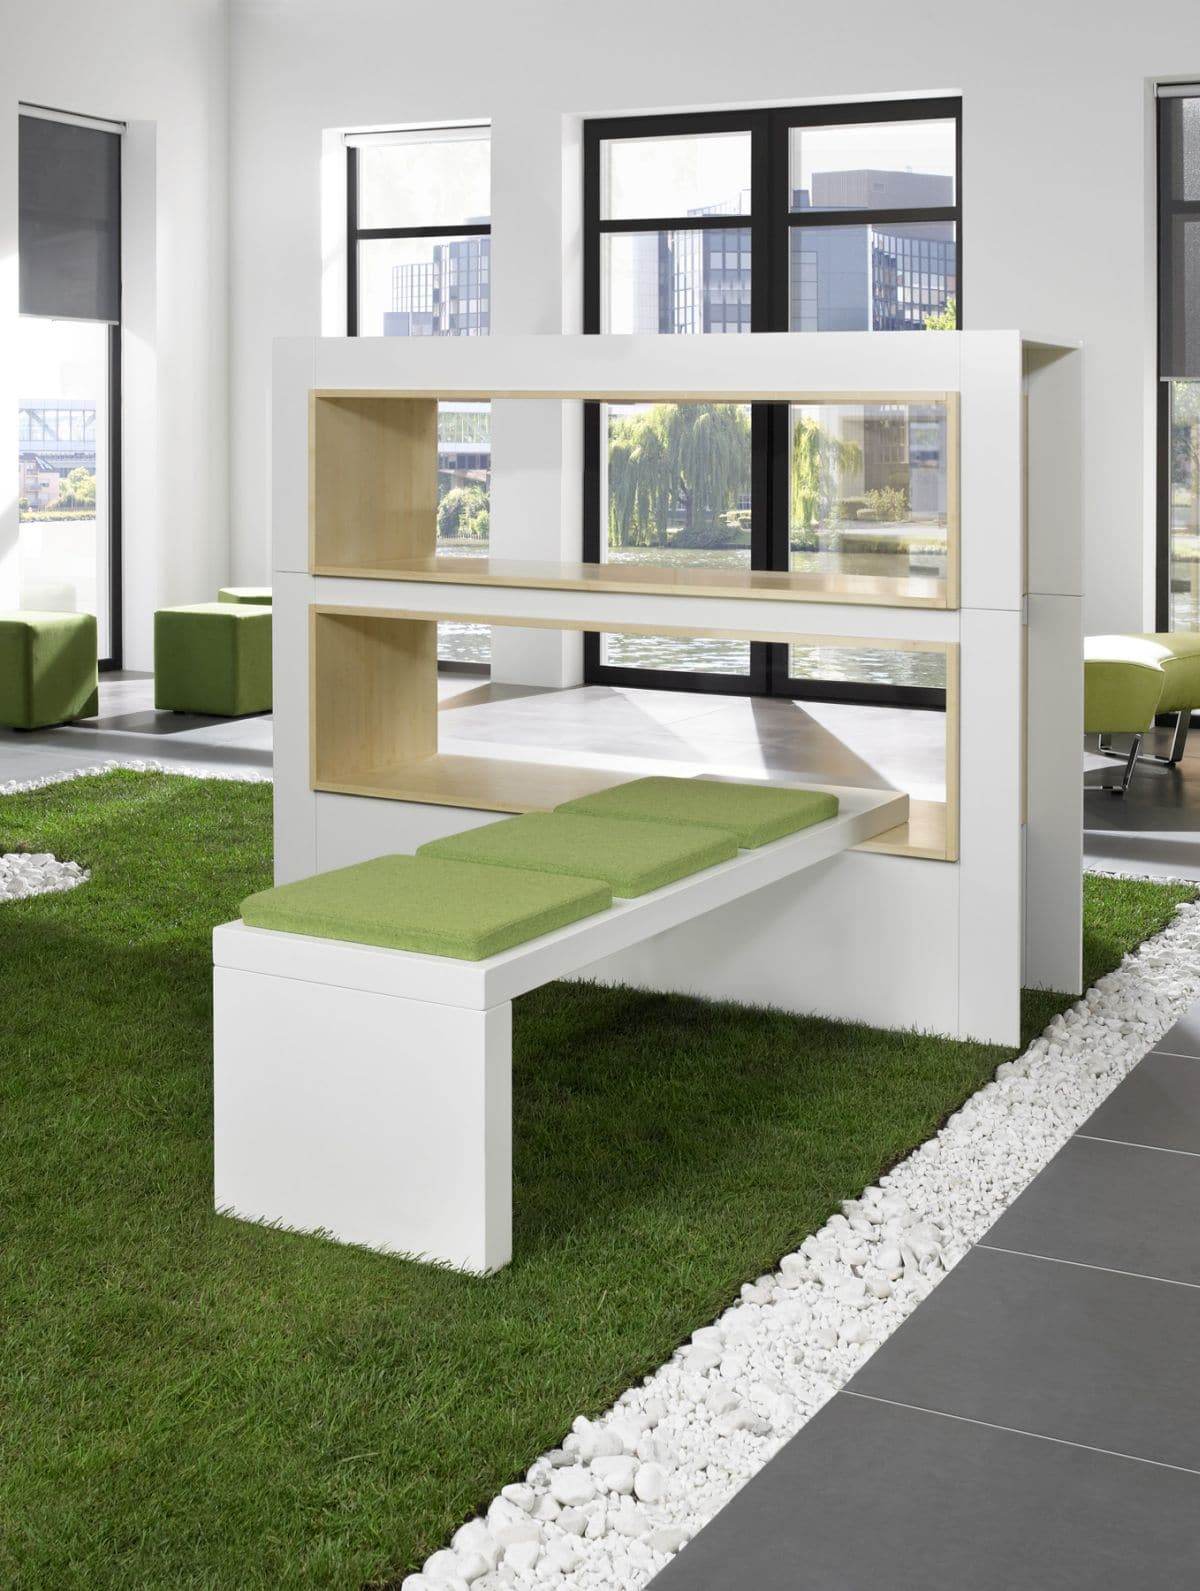 Everspace sand seating system - Nowy Styl Group